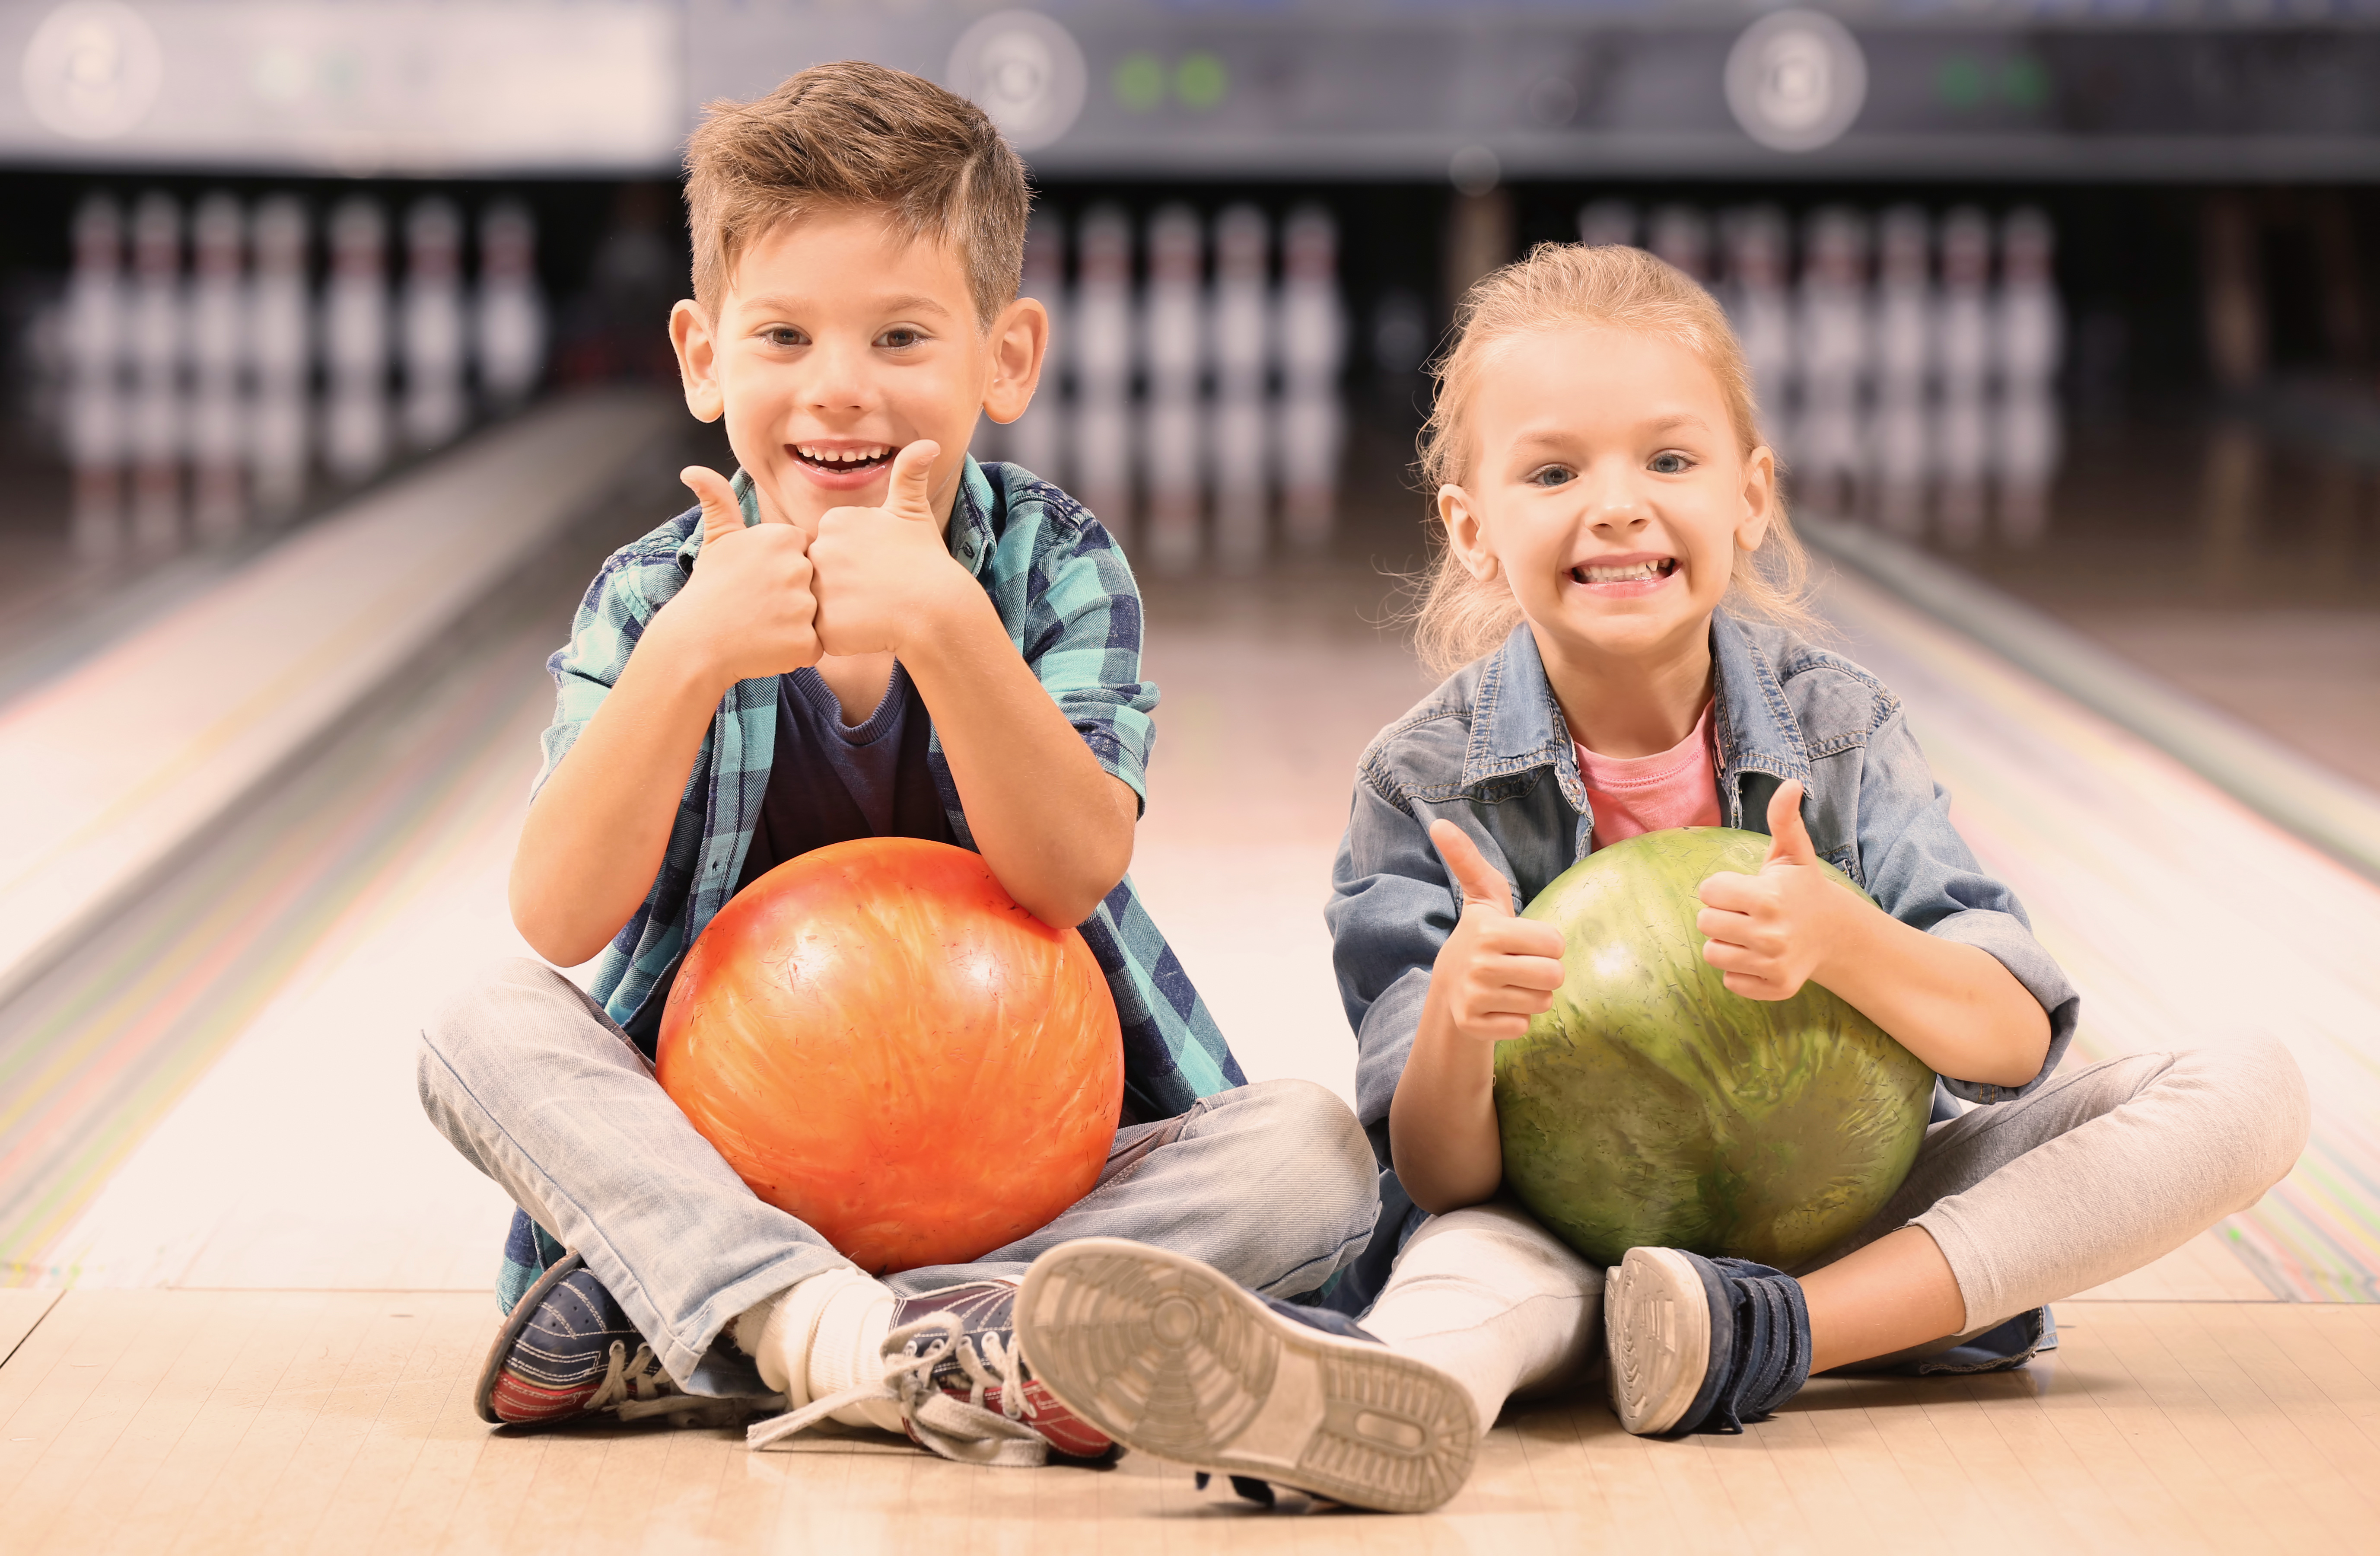 Kids Bowl Free at the Strike Zone Bowling Center